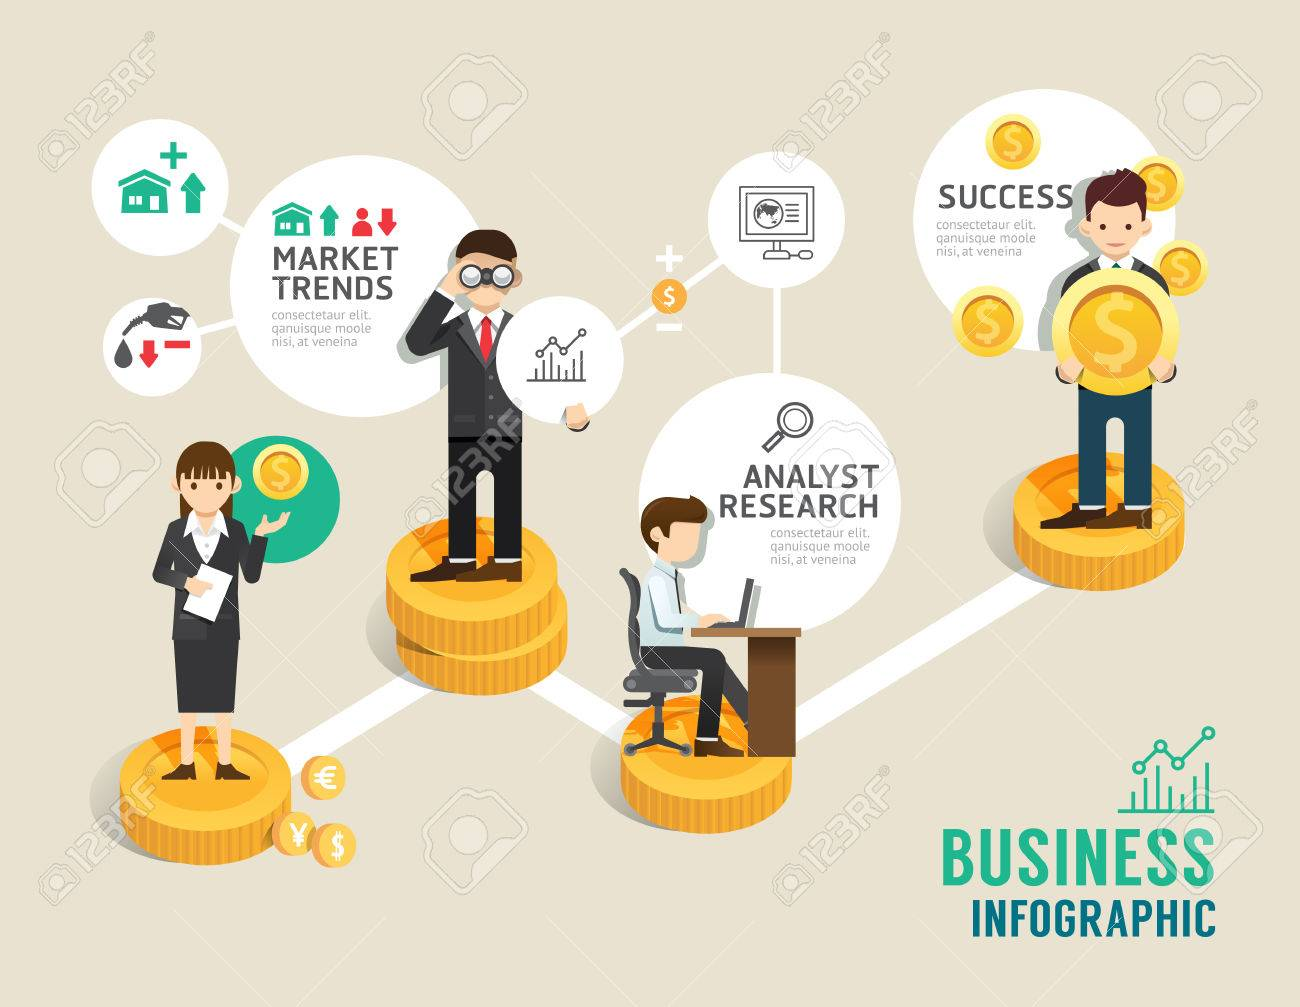 Business stock market board game flat line icons concept infographic step to successful, illustration - 51471542